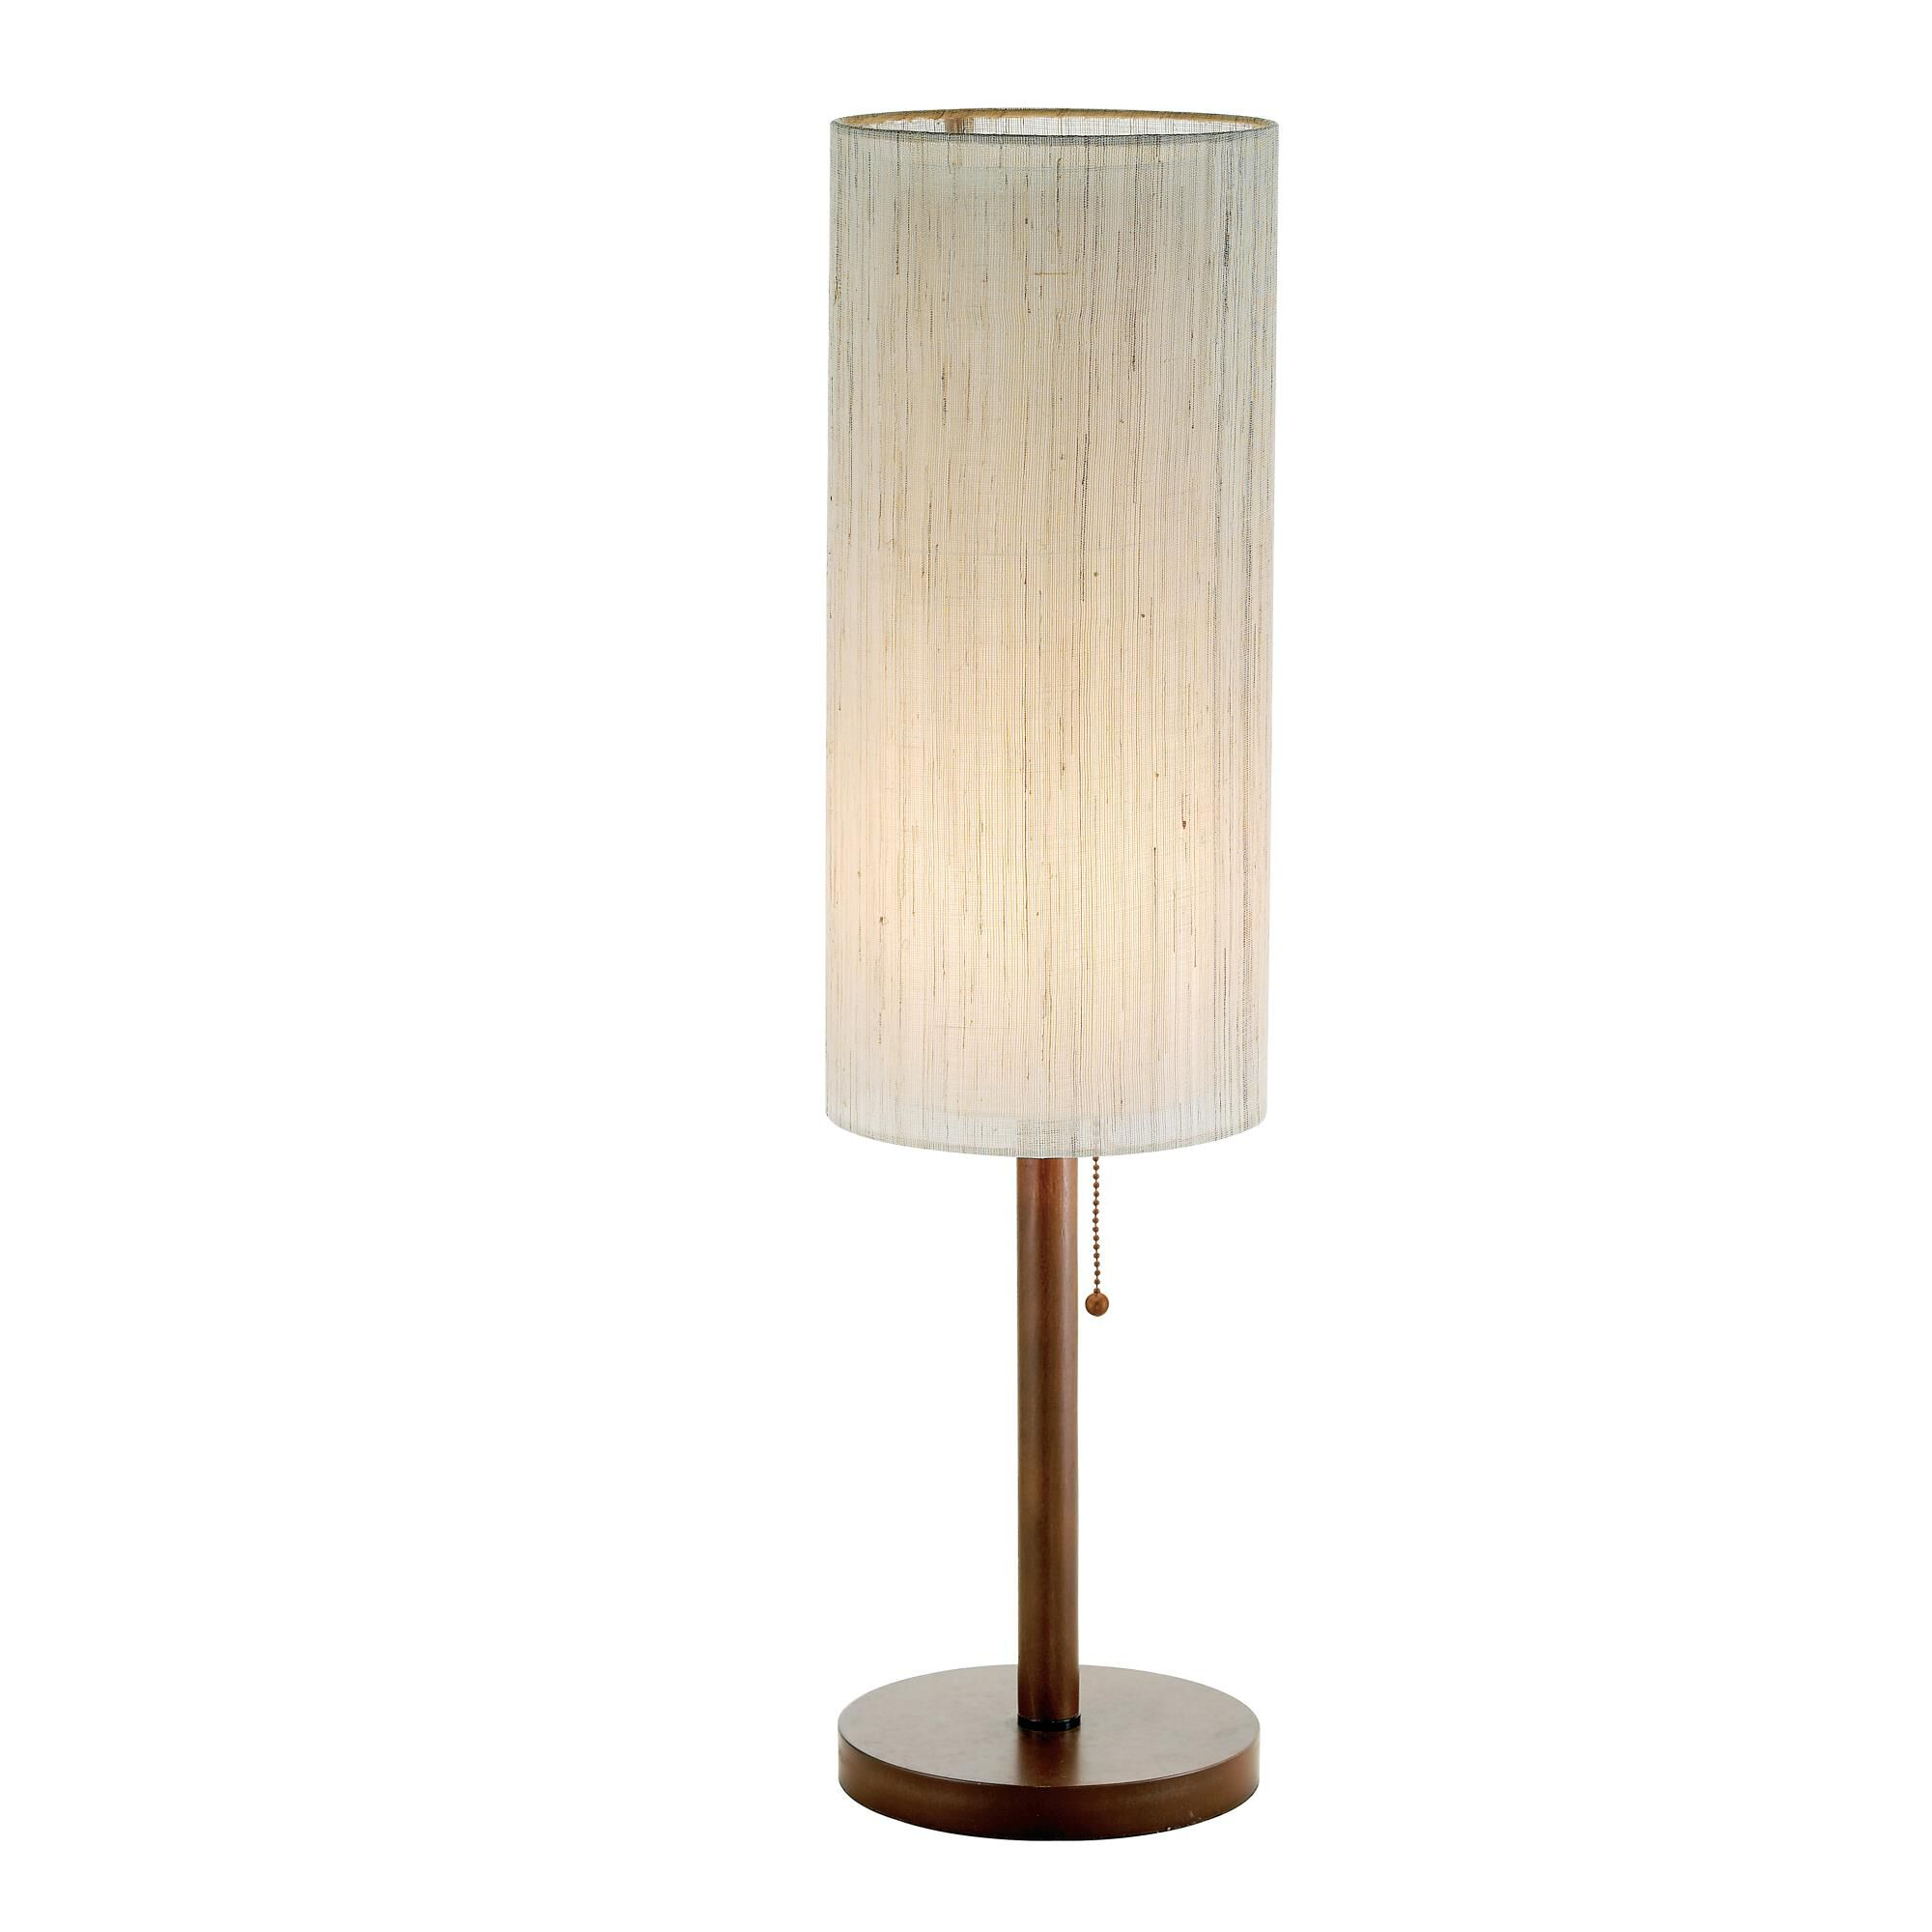 Adesso Hamptons Table Lamp Hamptons - 3337-15 - Modern Contemporary Table Lamp